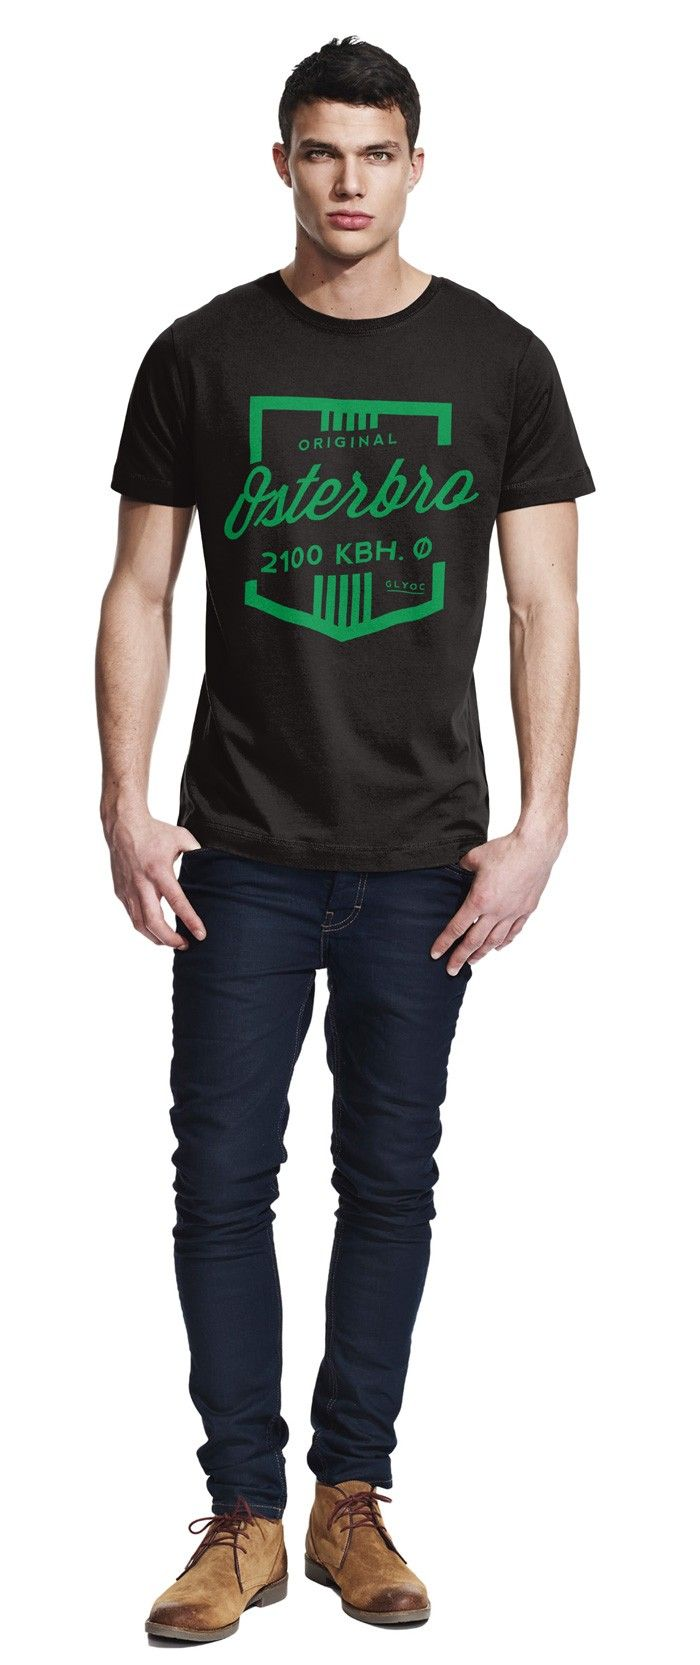 Magician-Oesterbro-00a550-N03-AB-Classic-Fitted-T-shirt-Man